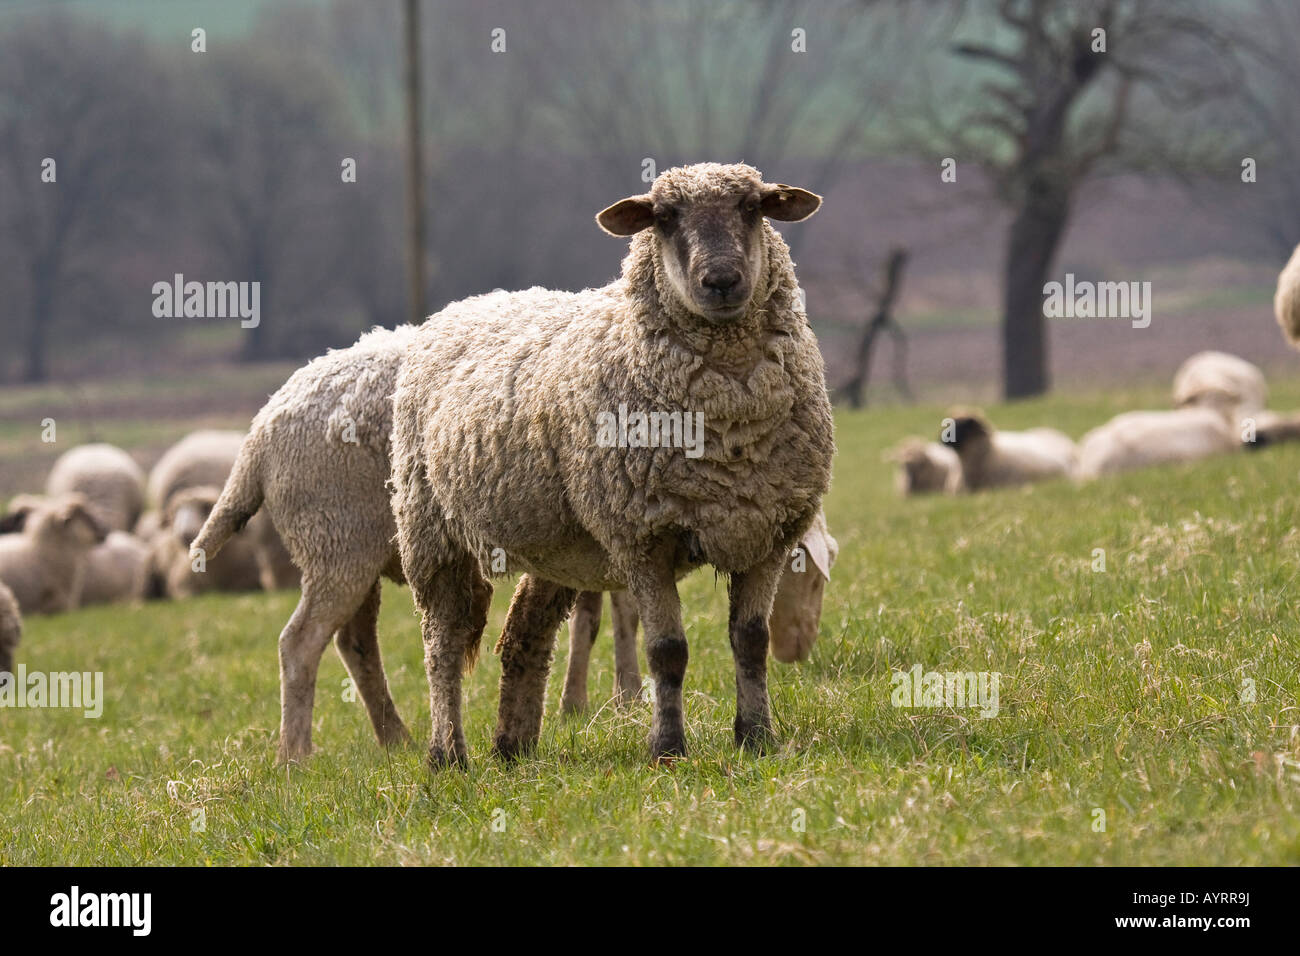 Baby Merino Sheep